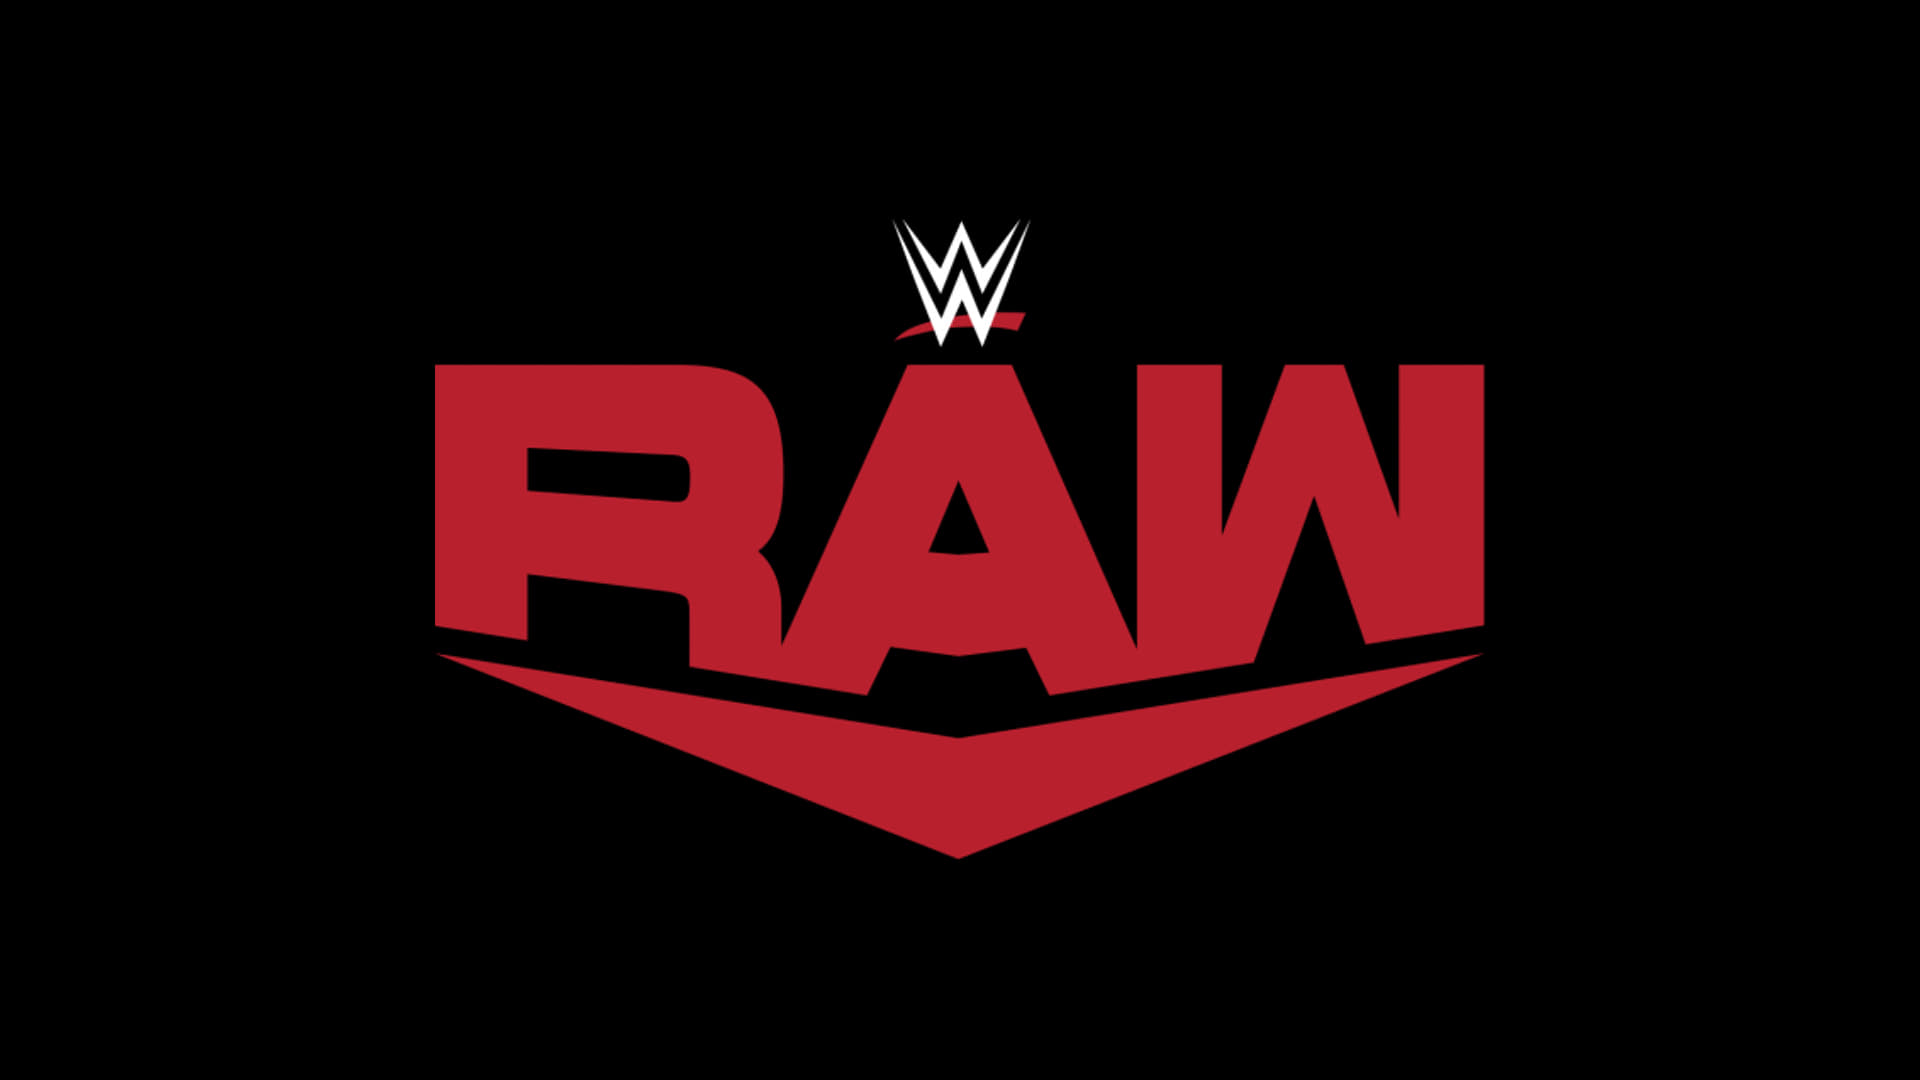 WWE Raw - Season 23 Episode 36 : September 7, 2015 (Baltimore, MD) (1970)